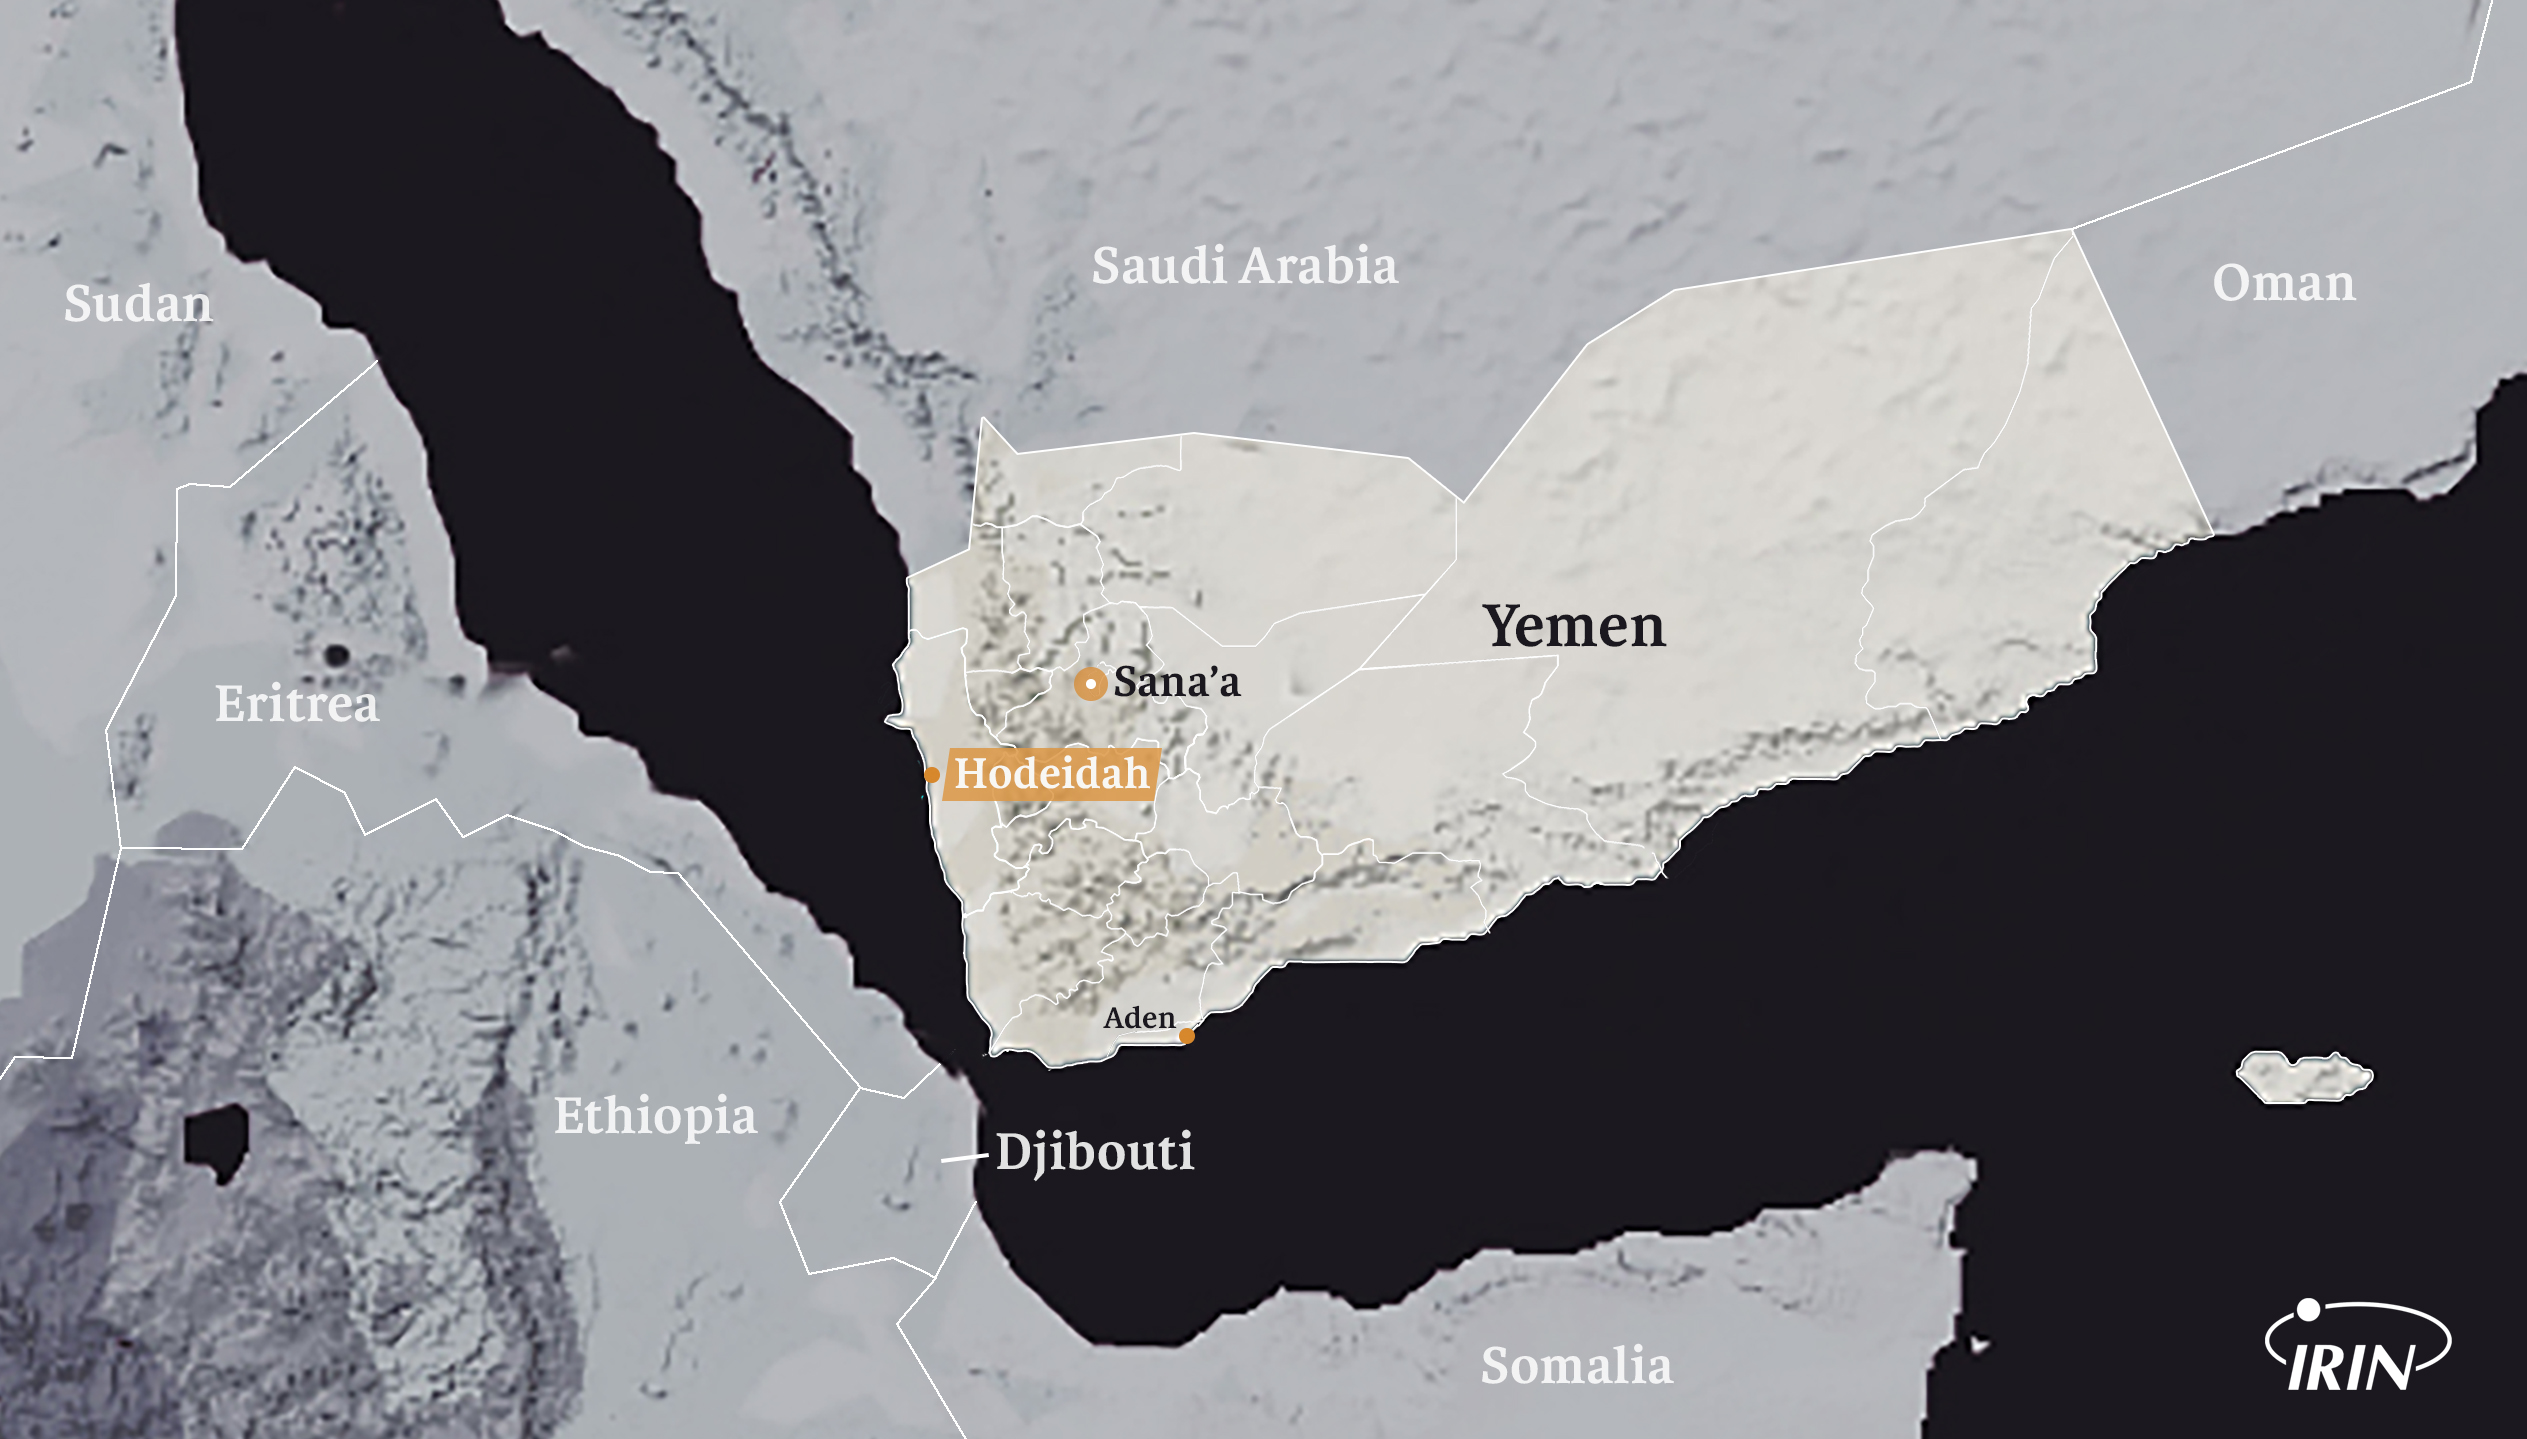 Map of Yemen showing neighbouring countries, Hodeidah, Sana'a, and Aden